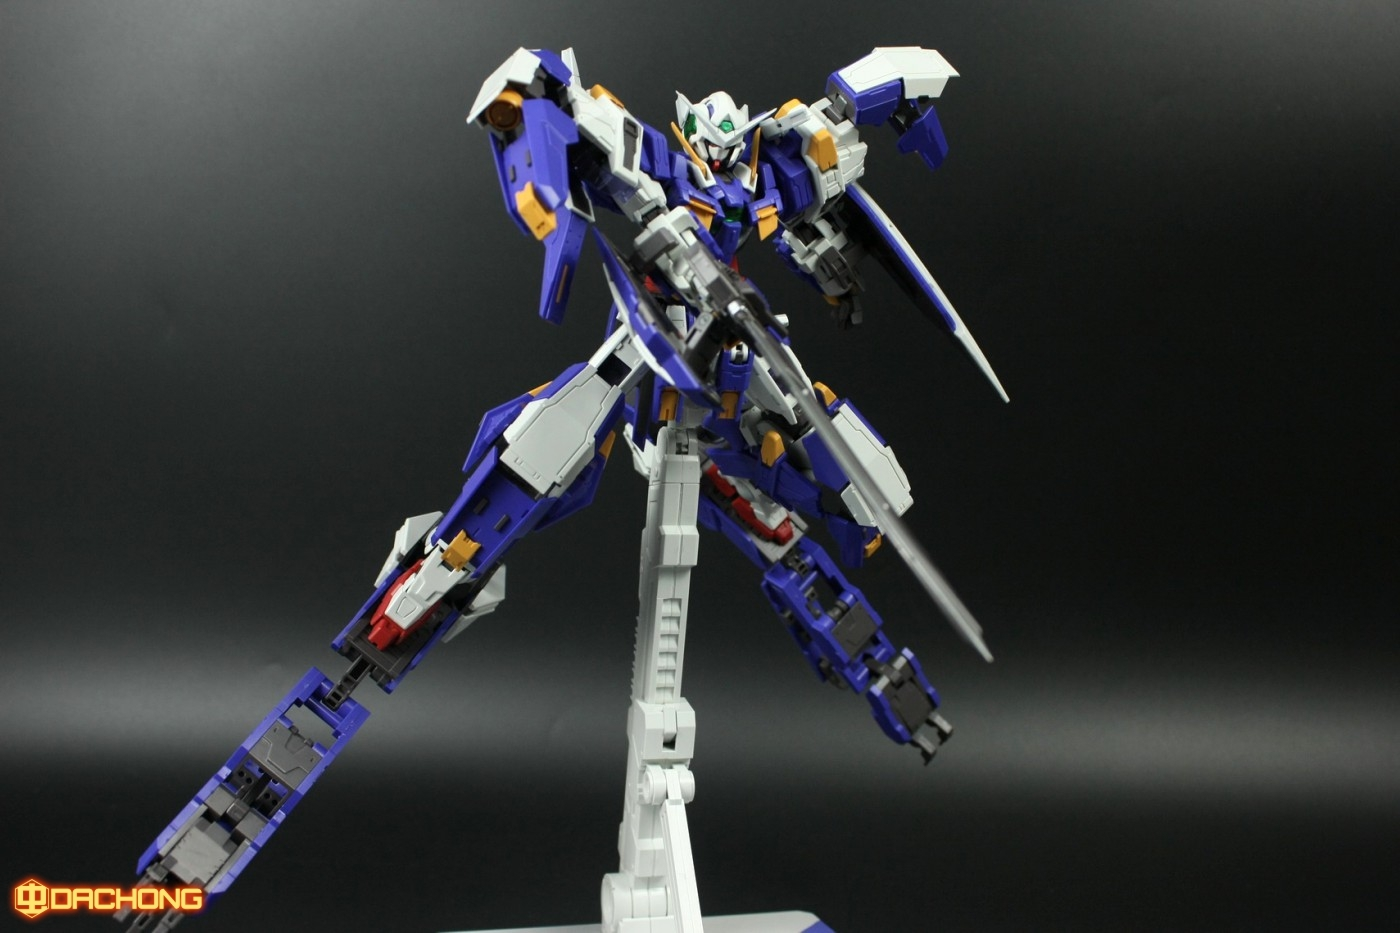 S254_MG_exia_HS_review_inask_095.jpg